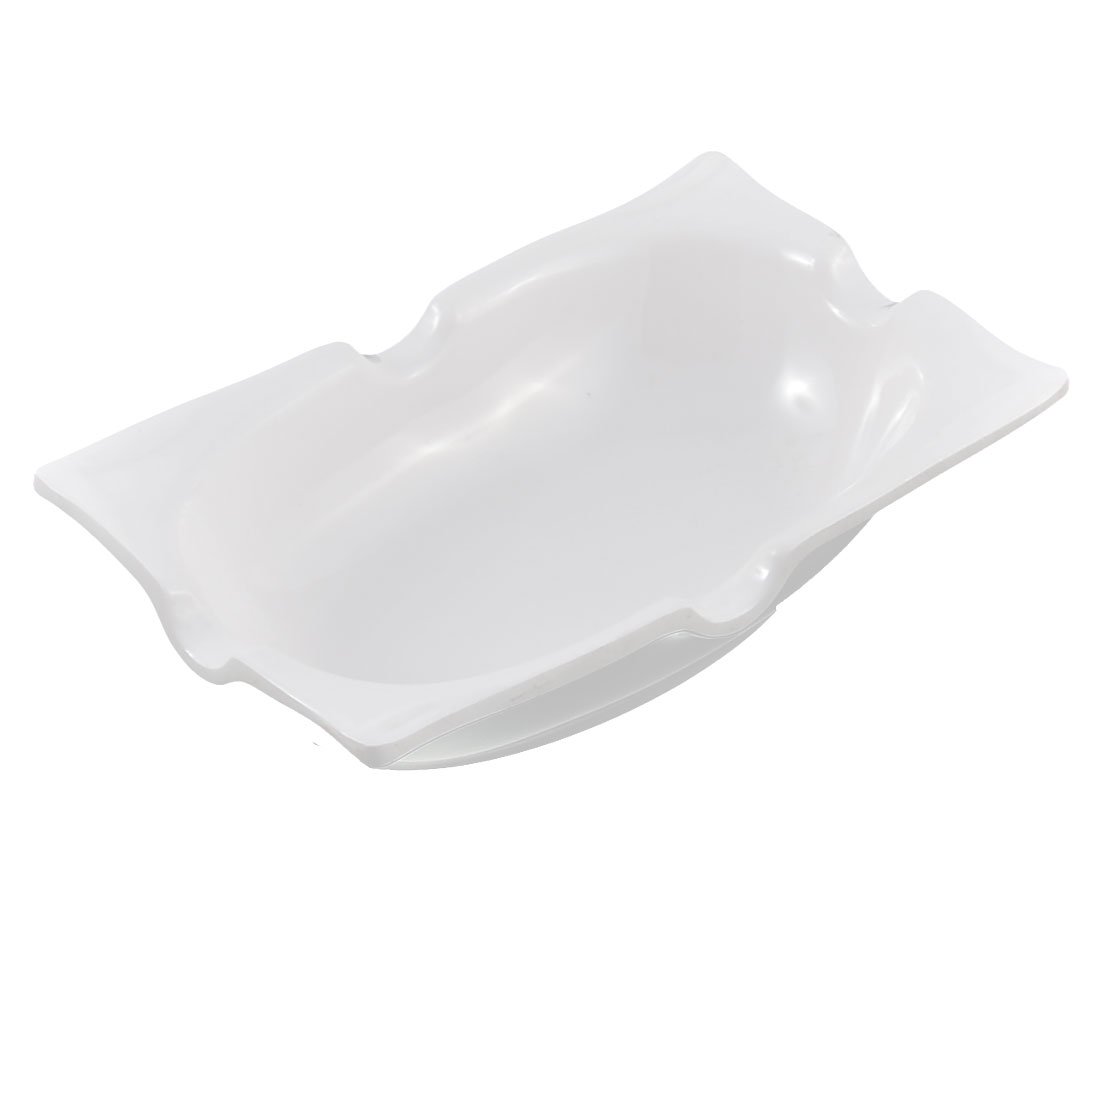 Plastic Sushi Soy Sauce Wasabi Mustard Flavour Serving Dipping Dish Plate